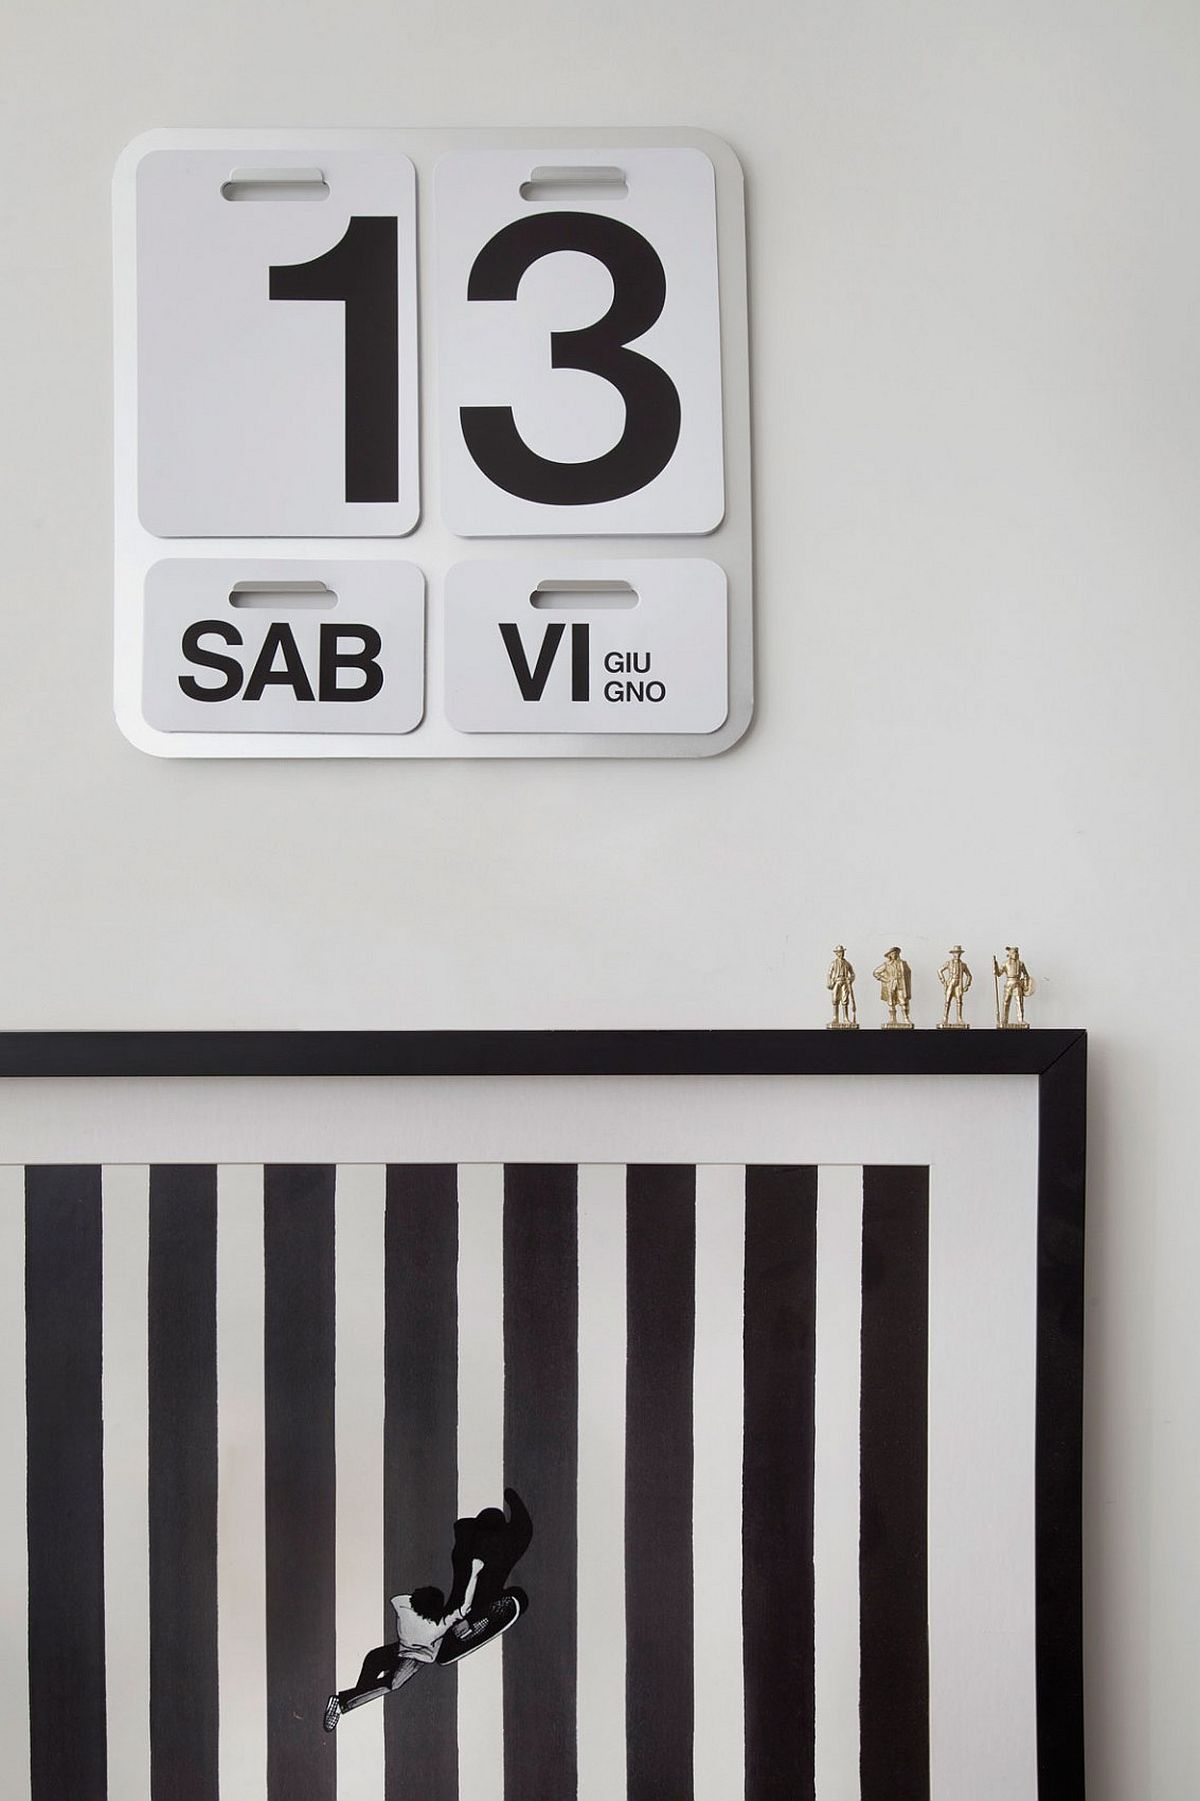 Turn the calander into a striking addition in the living room